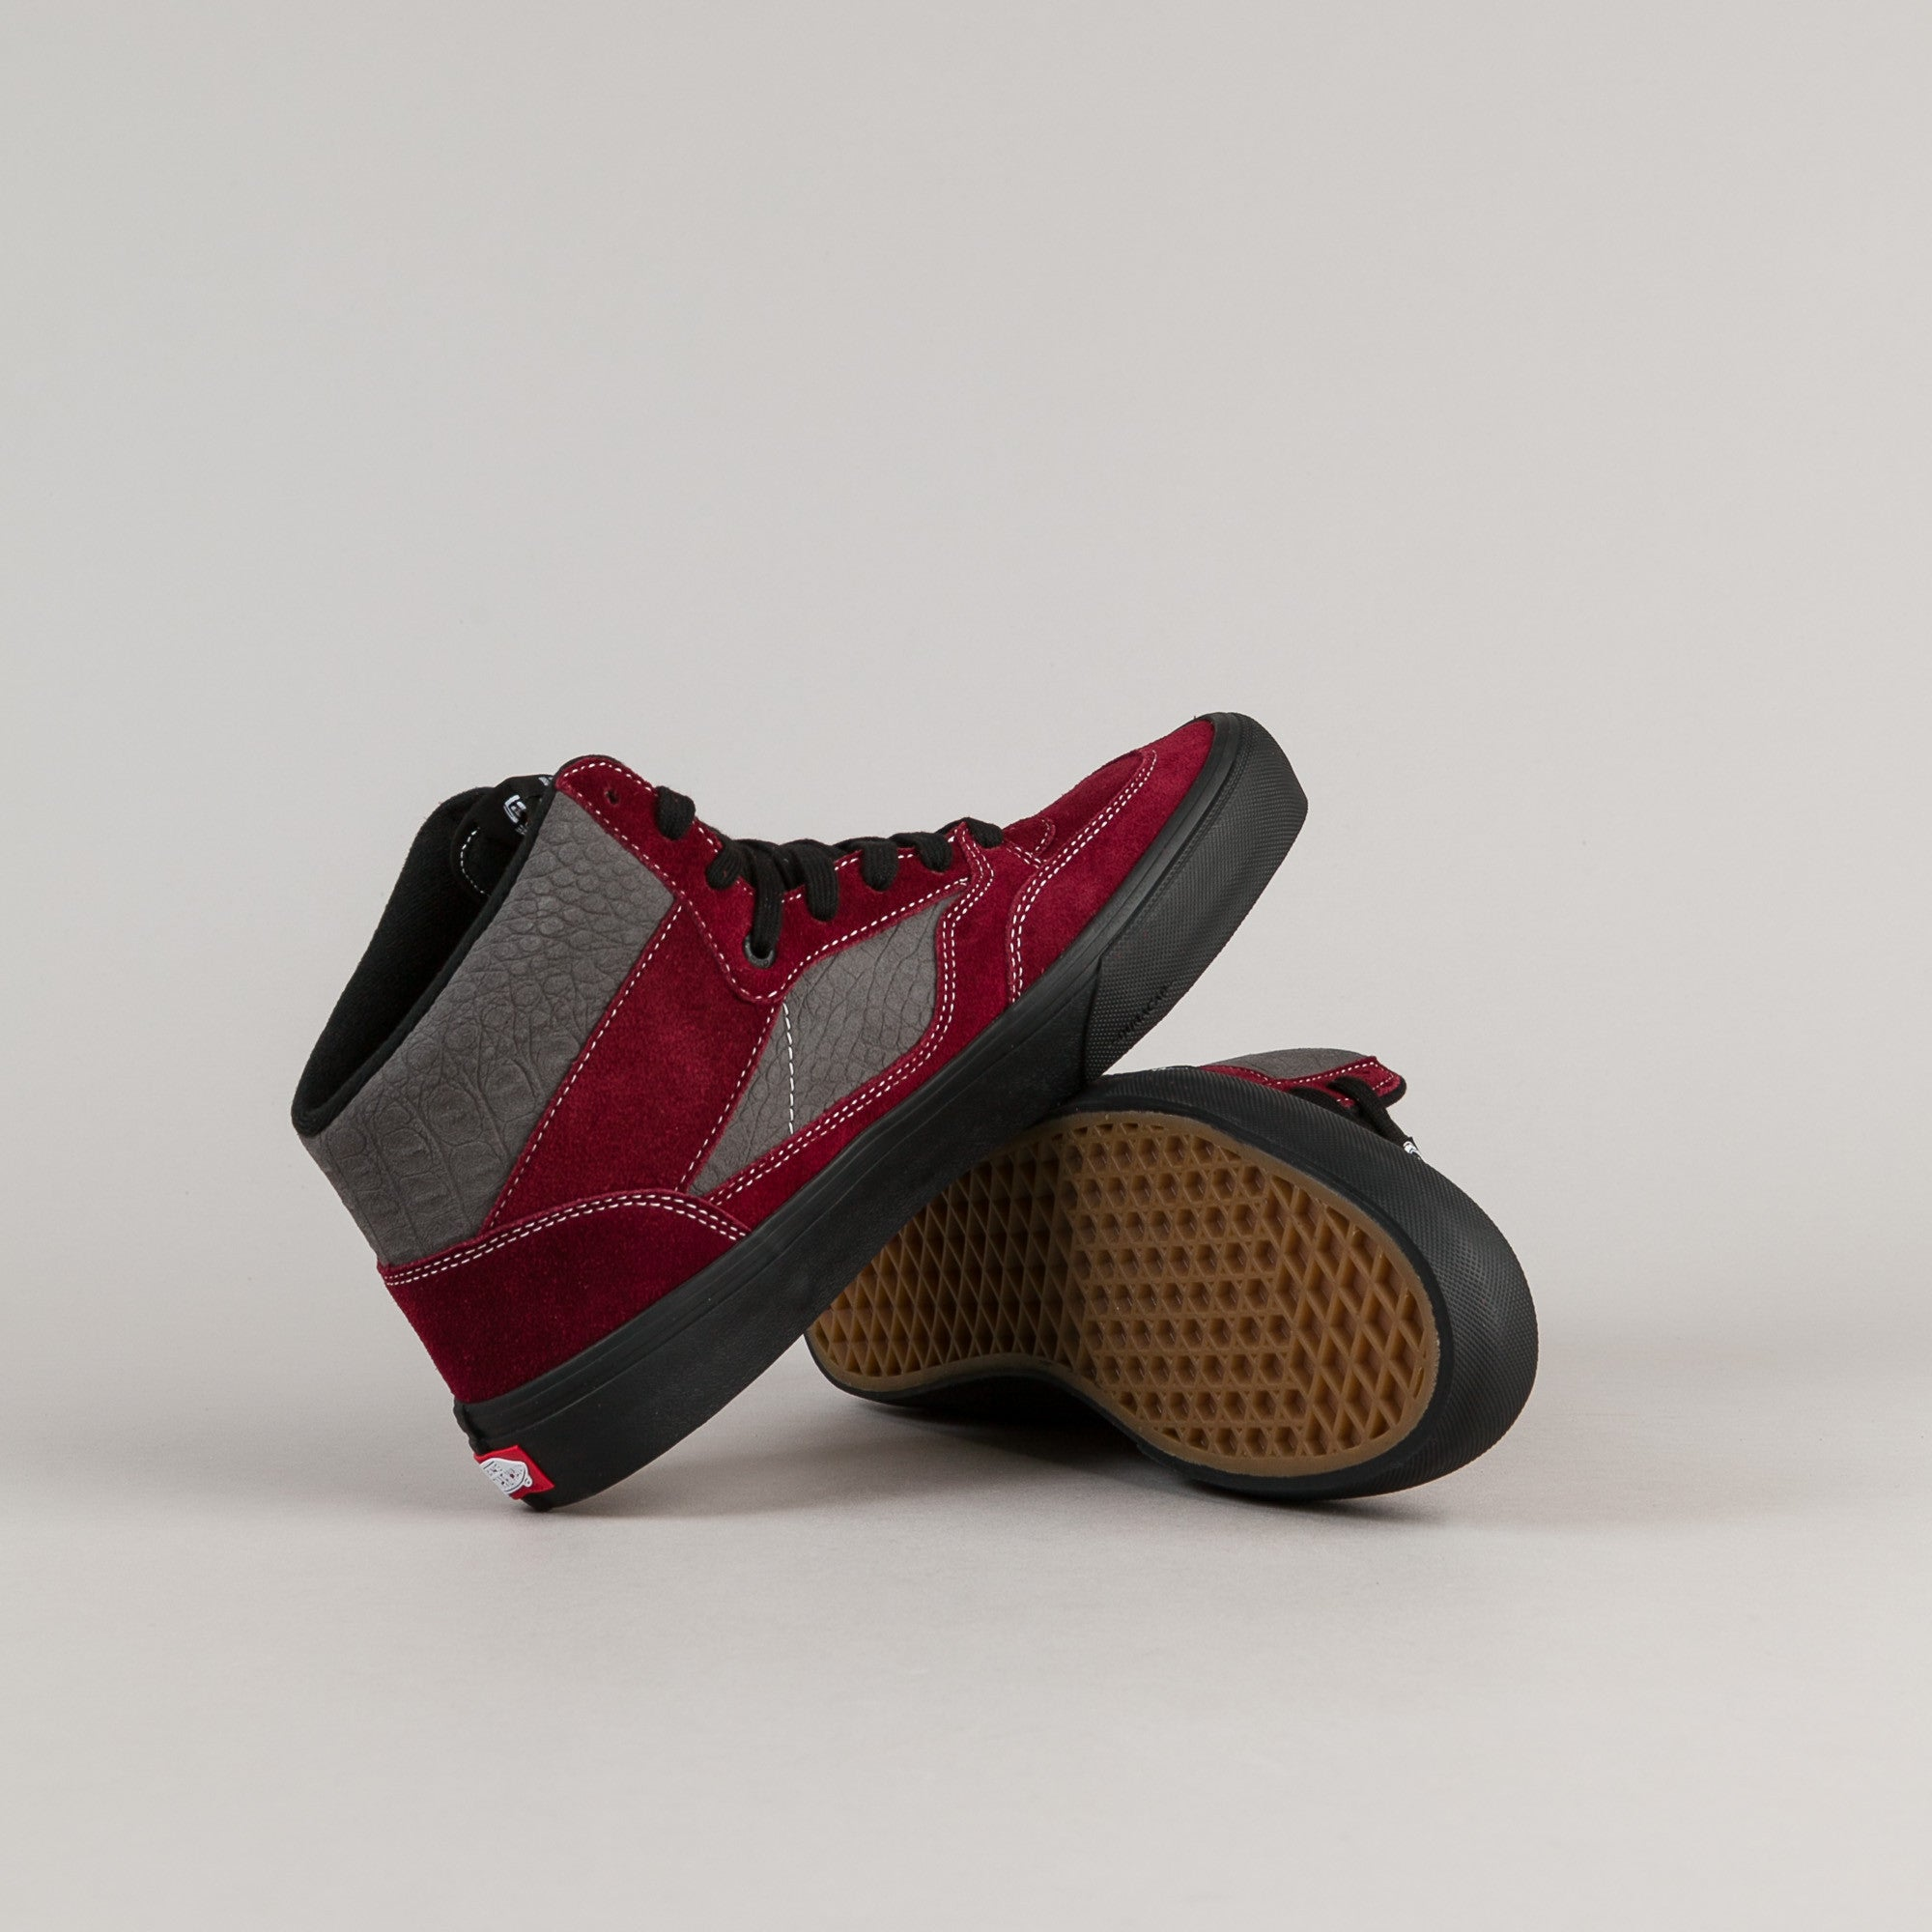 Vans 50th Full Cab Pro '89 Shoes - Burgundy / Grey